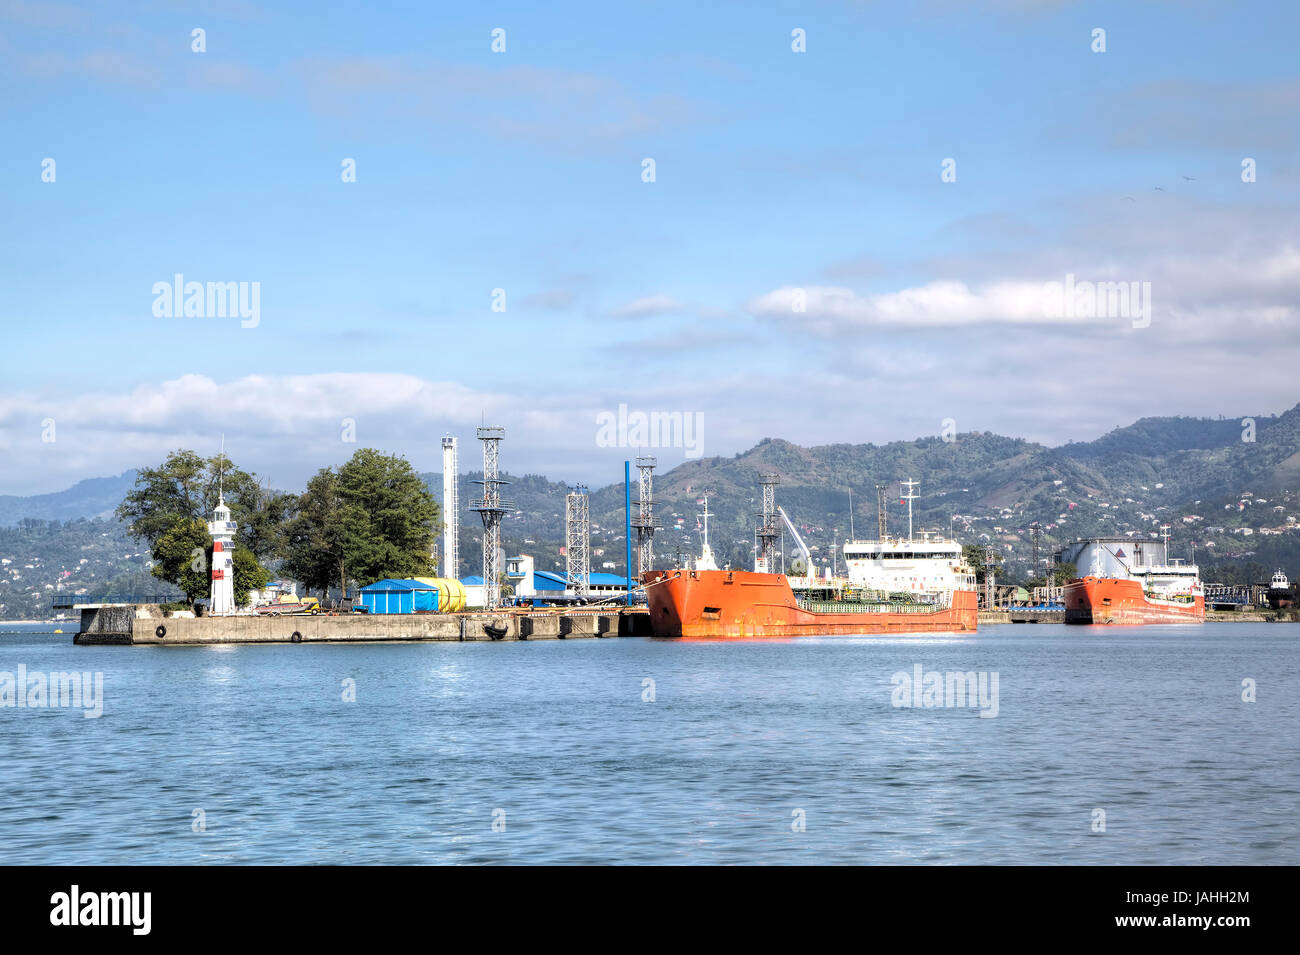 Sea port. Batumi, Georgia - Stock Image